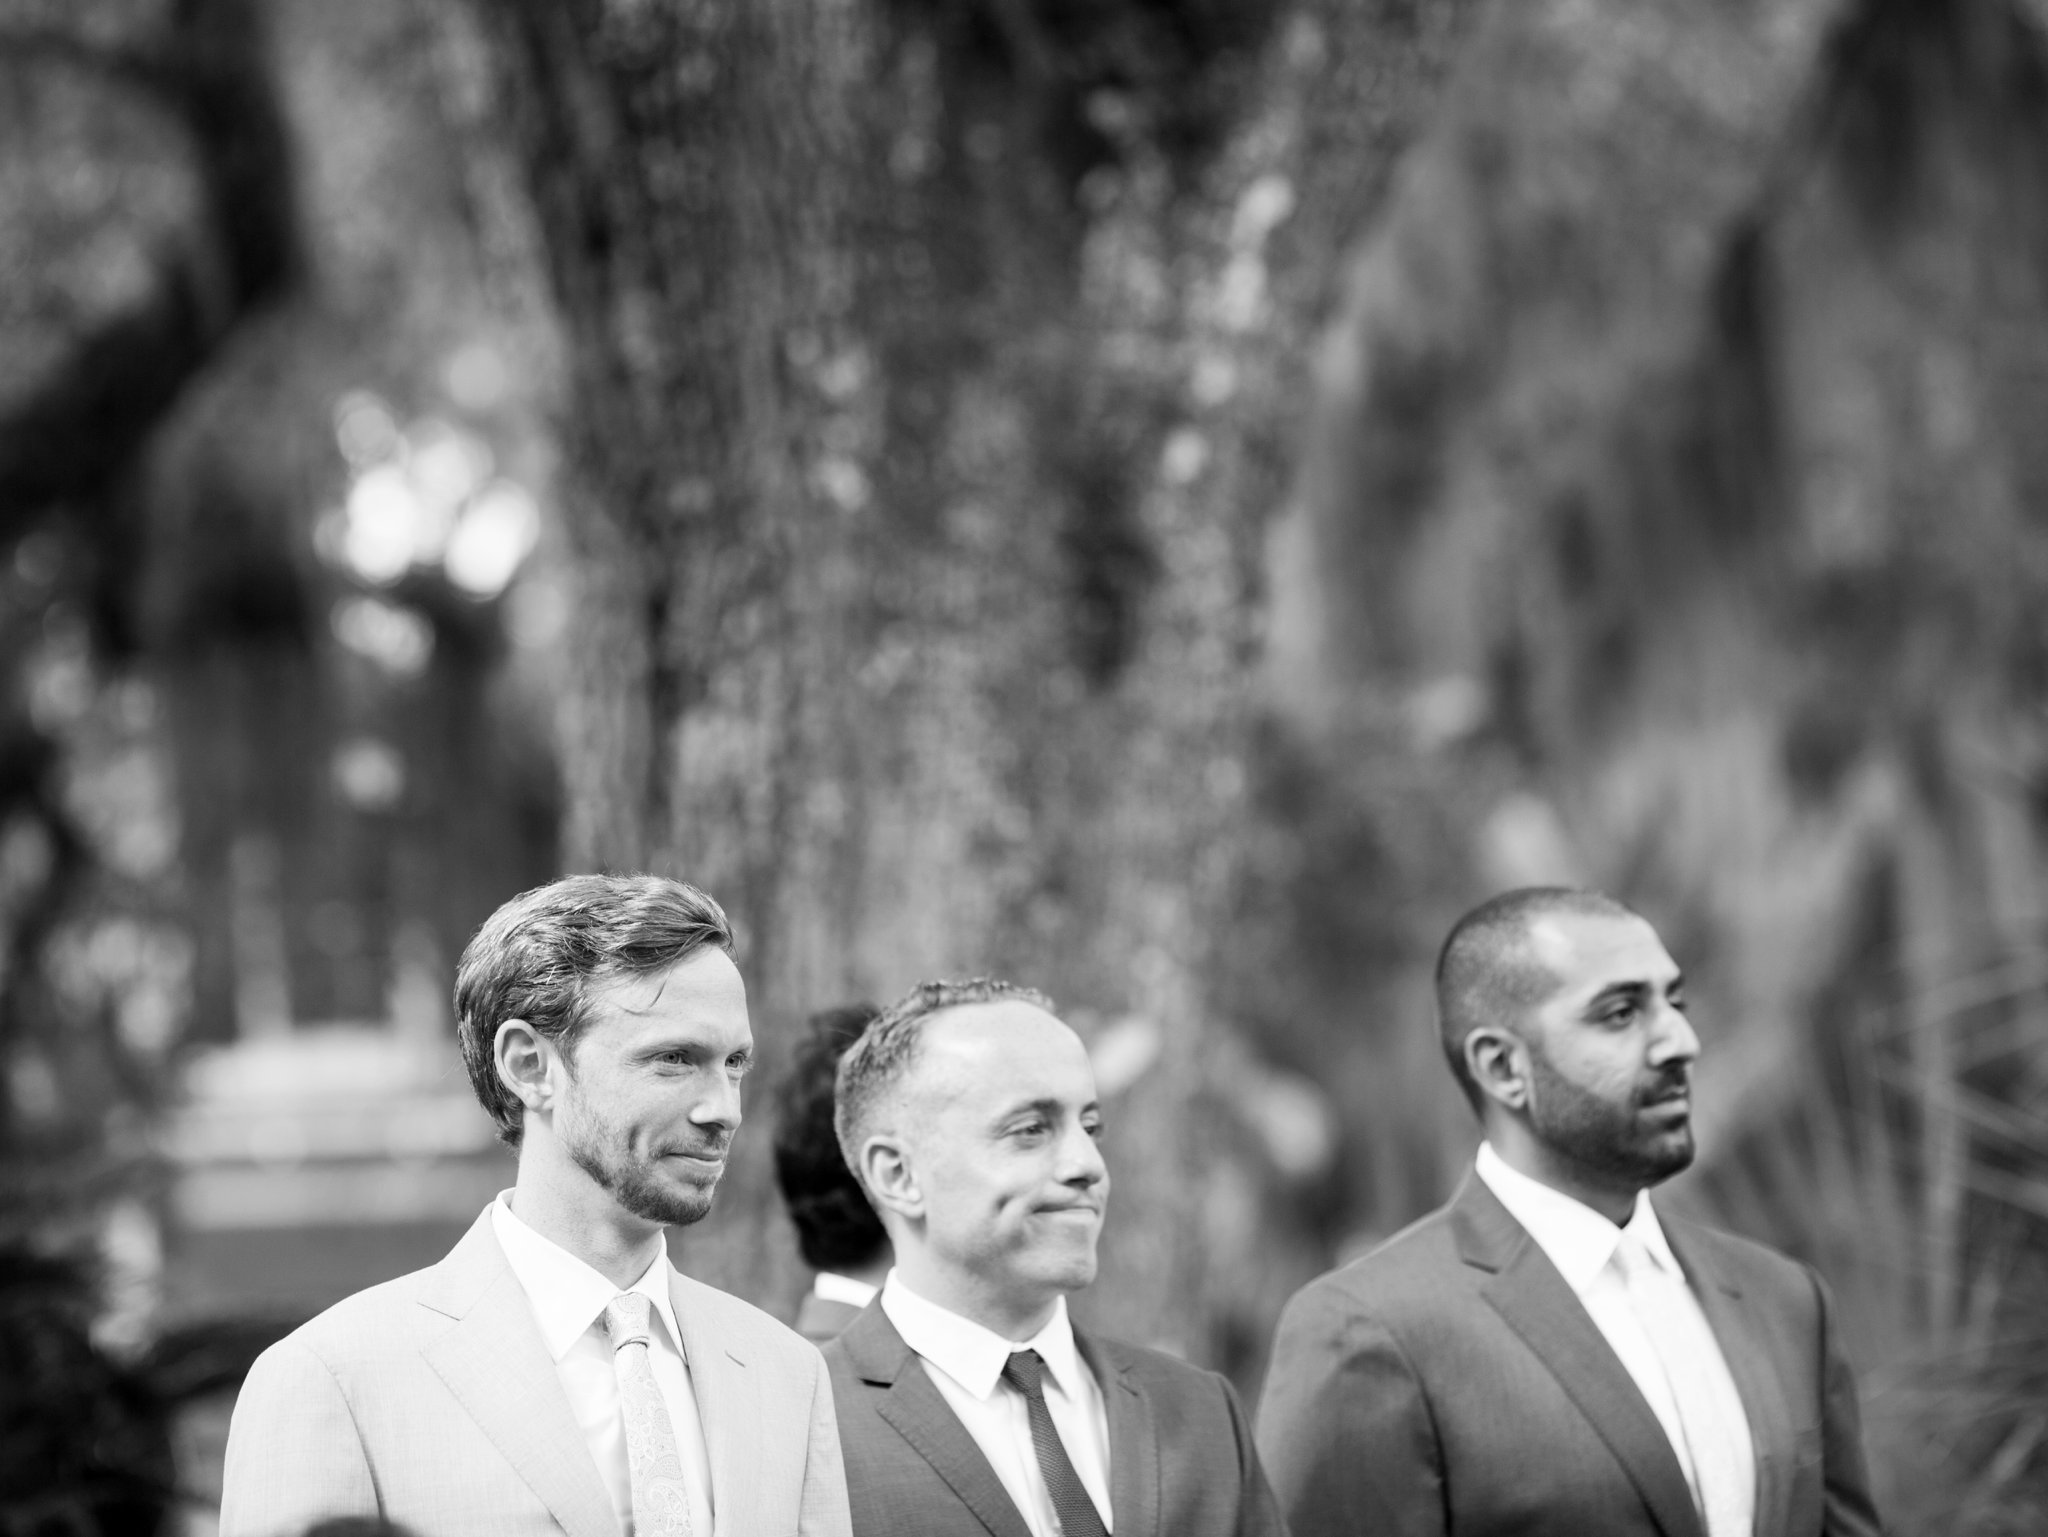 Persian-Jewish wedding goodwood wedding photographer tallahassee florida shannon griffin photography_0001.jpg